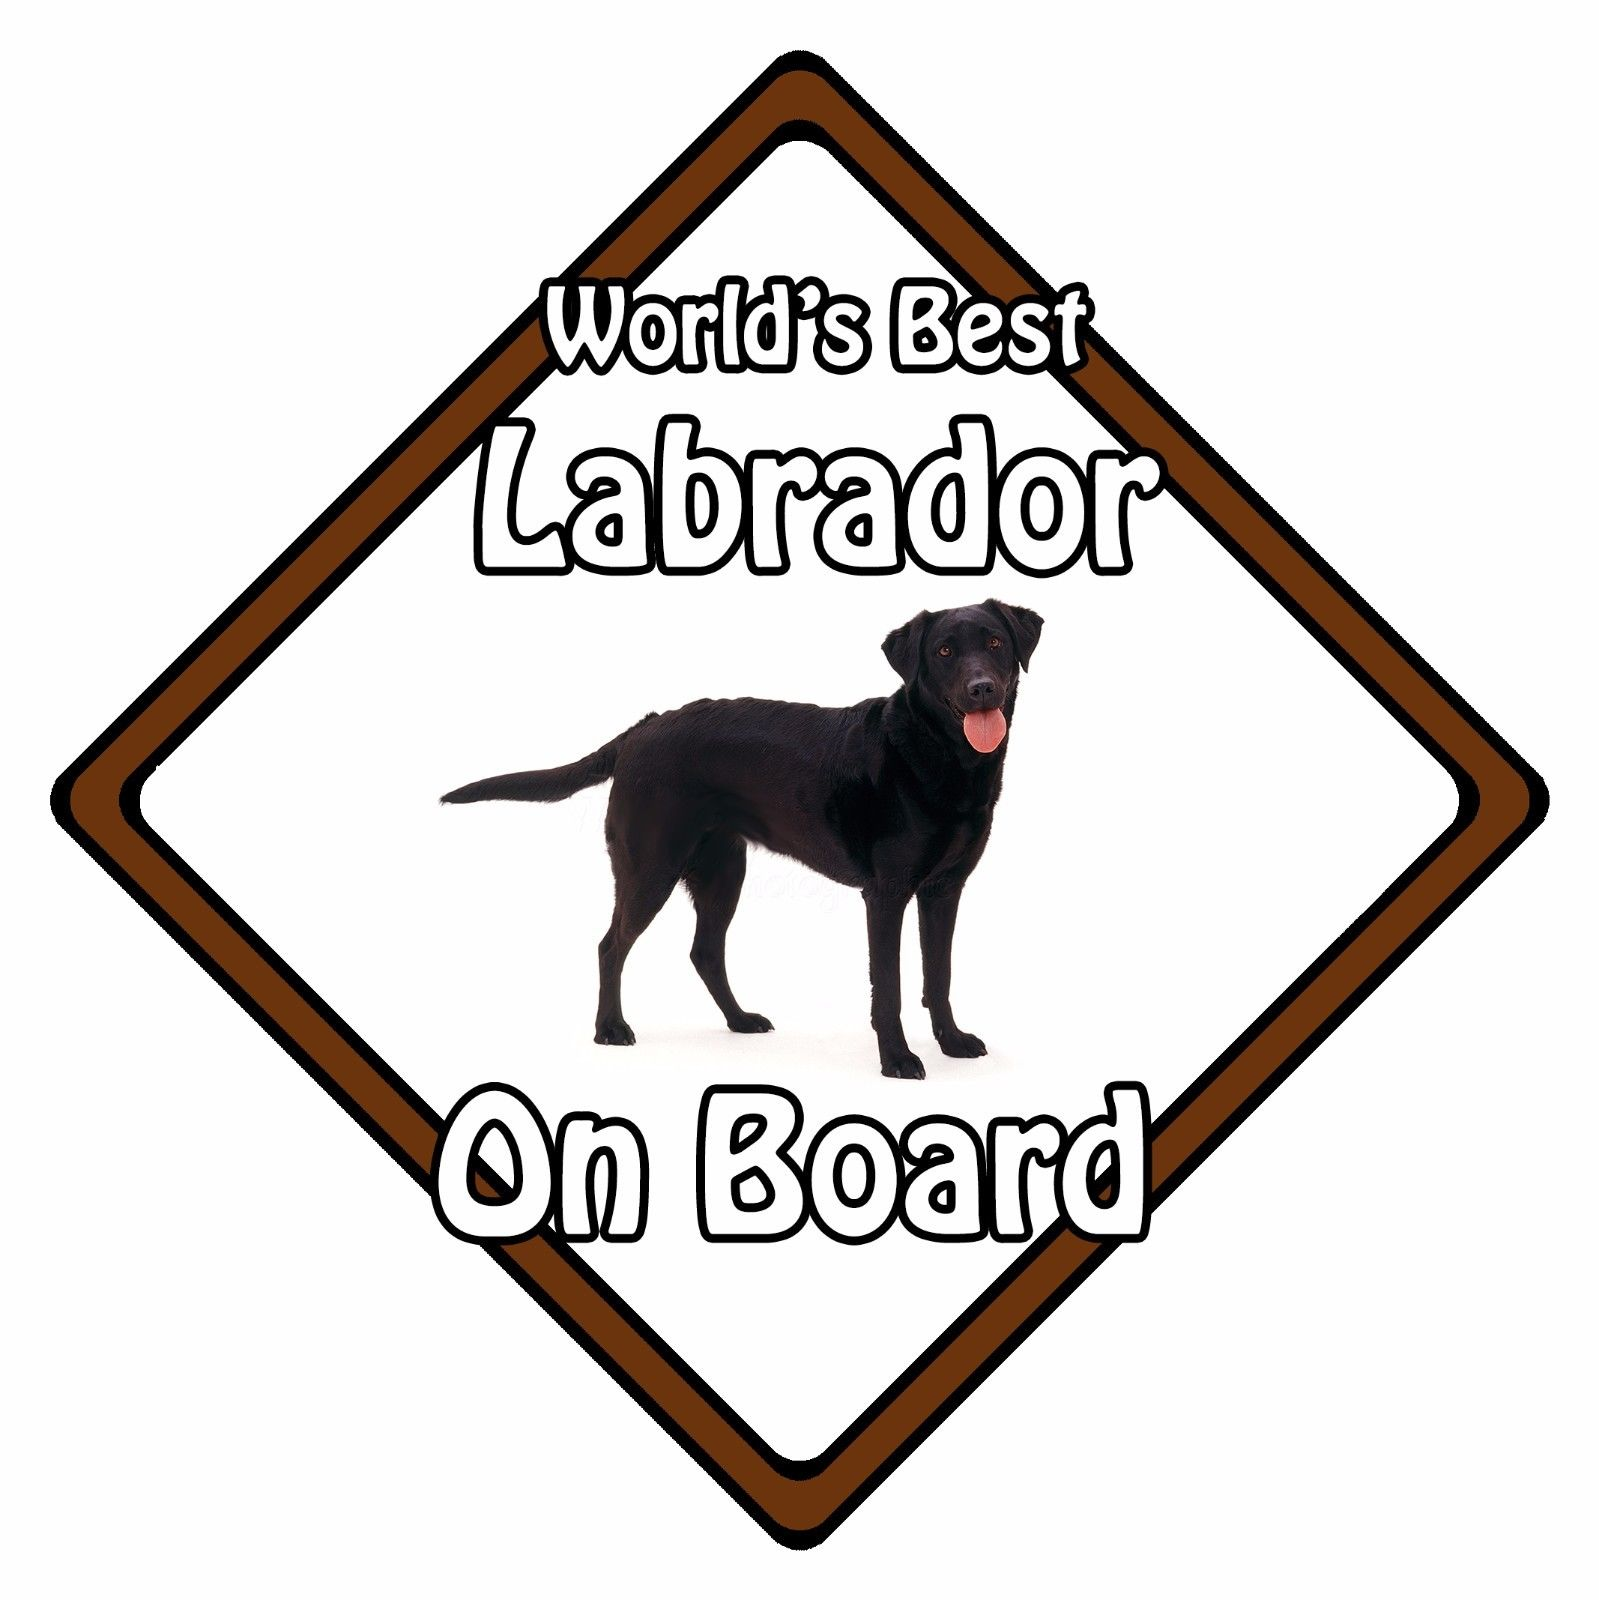 021a09fc8a9a Non Personalised Dog On Board Car Safety Sign World S Best